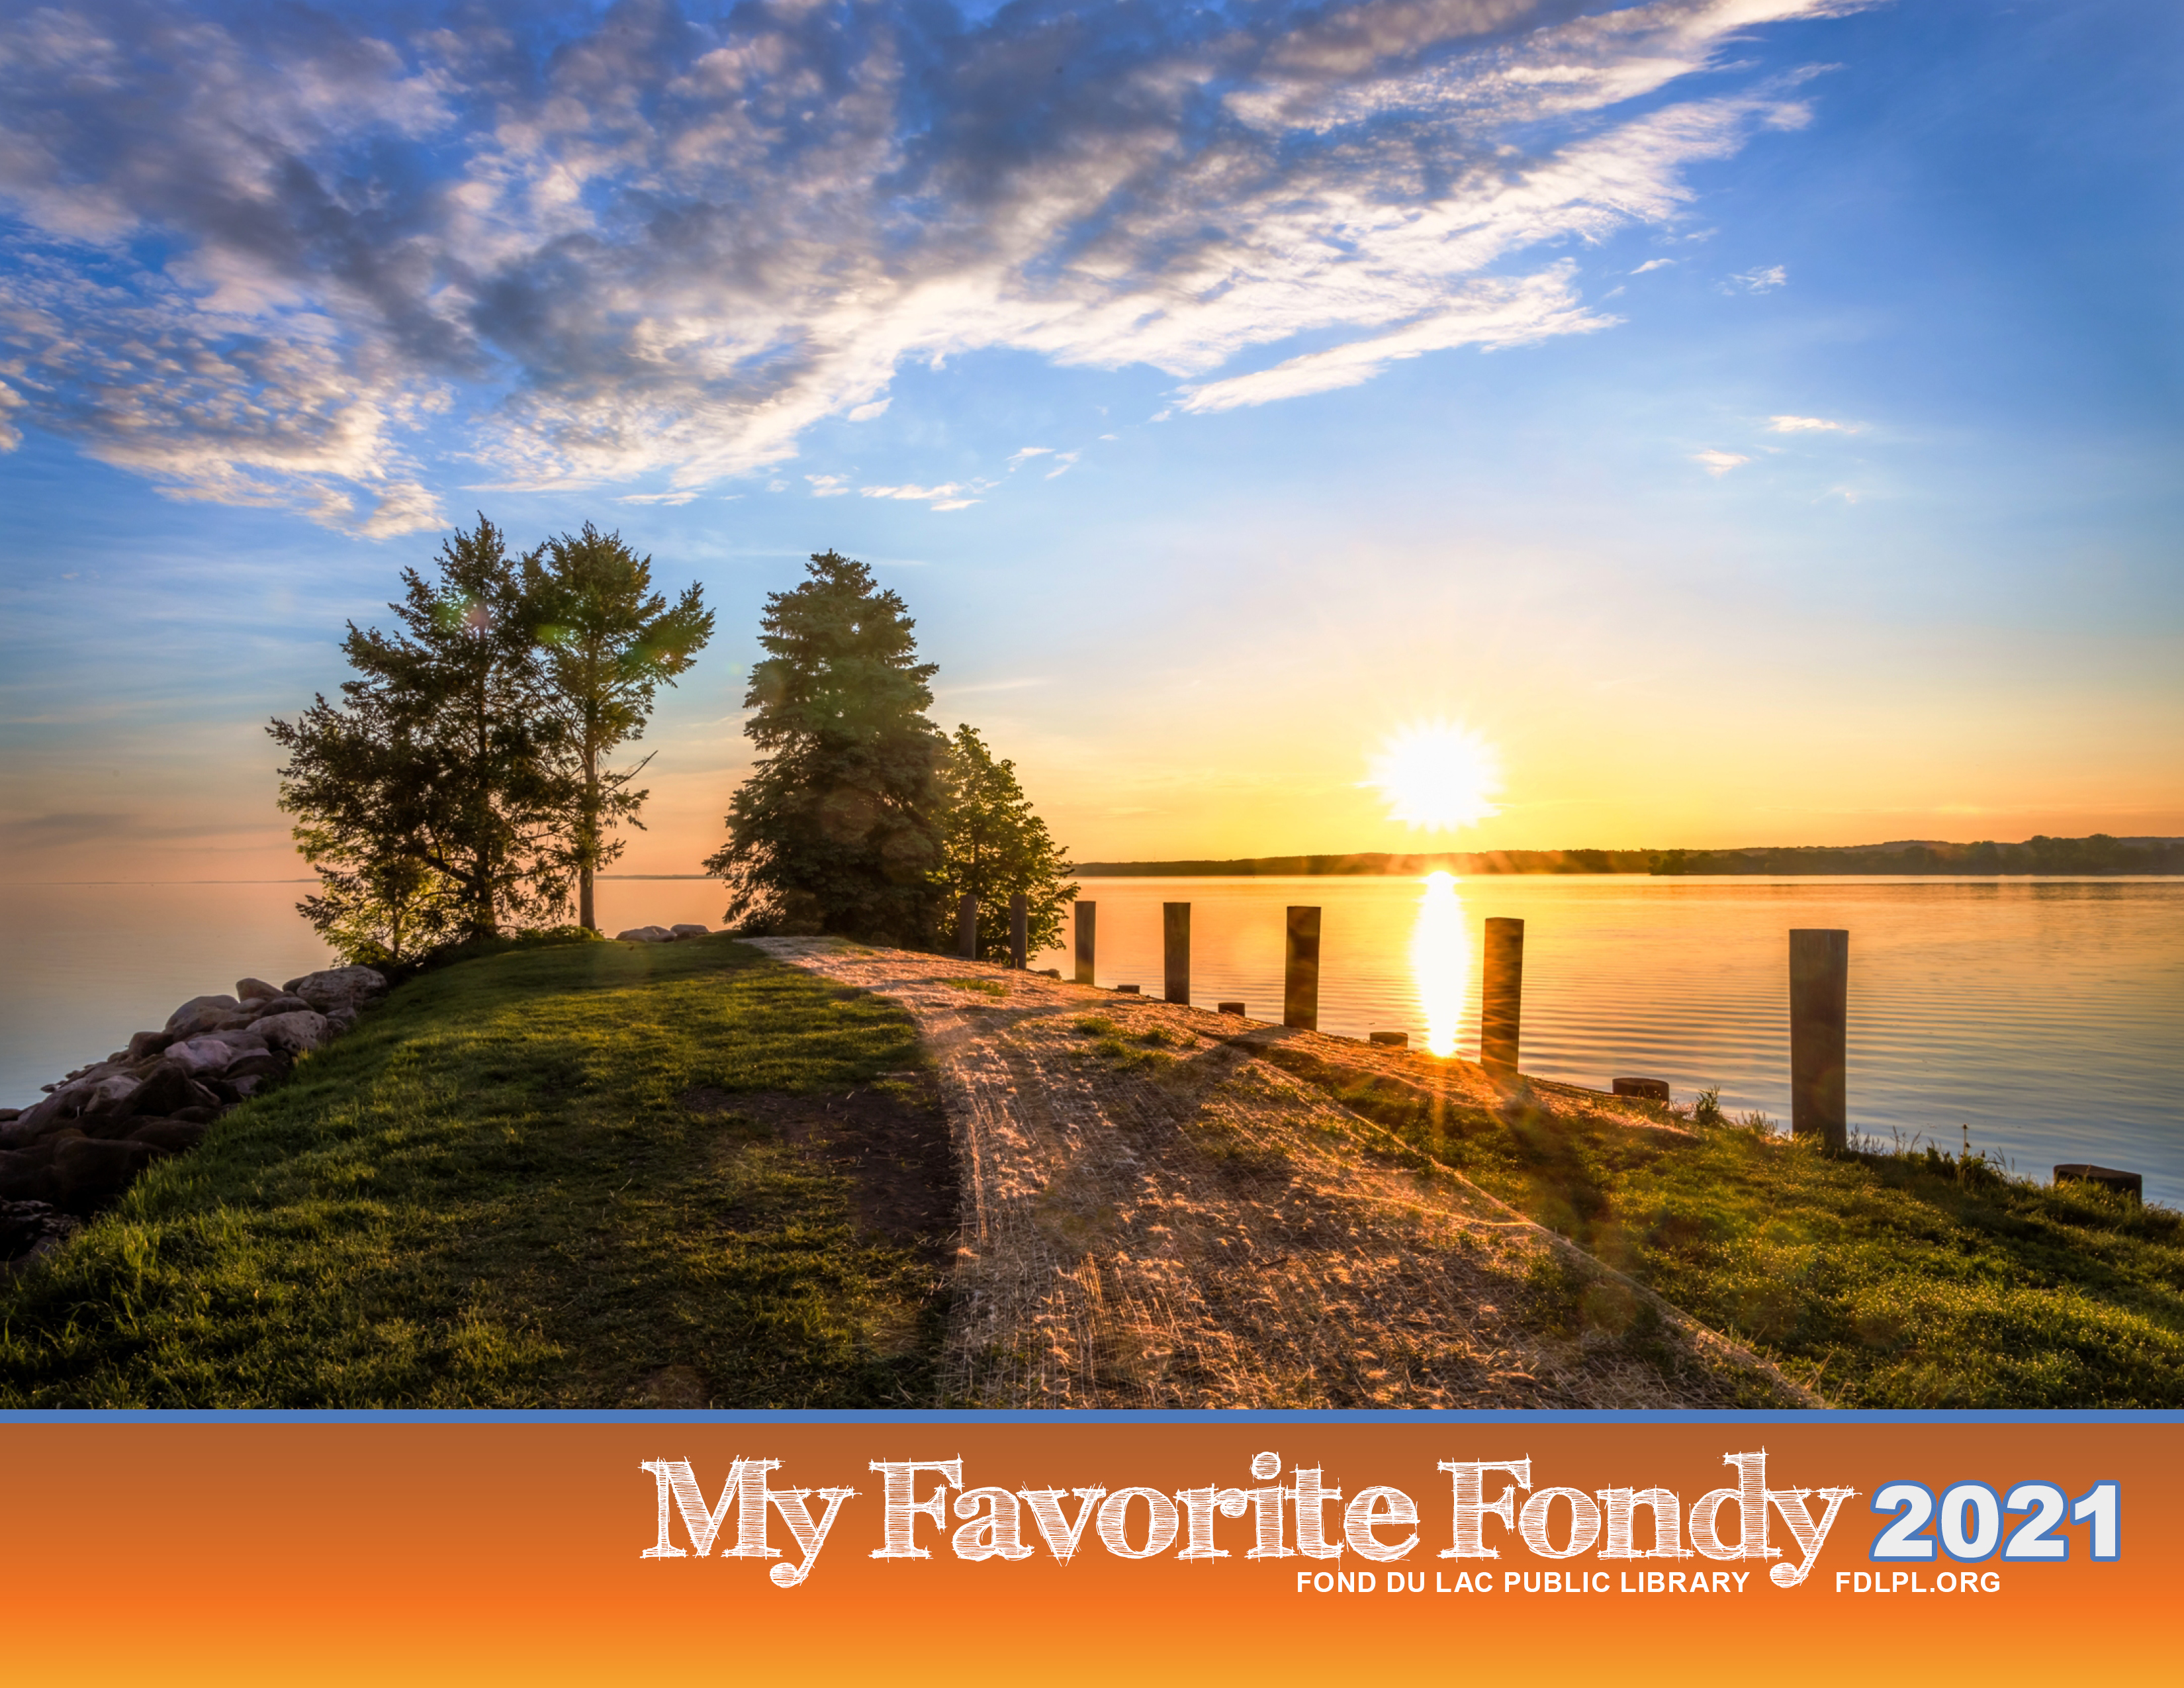 My Favorite Fondy 2021 calendars now are on sale